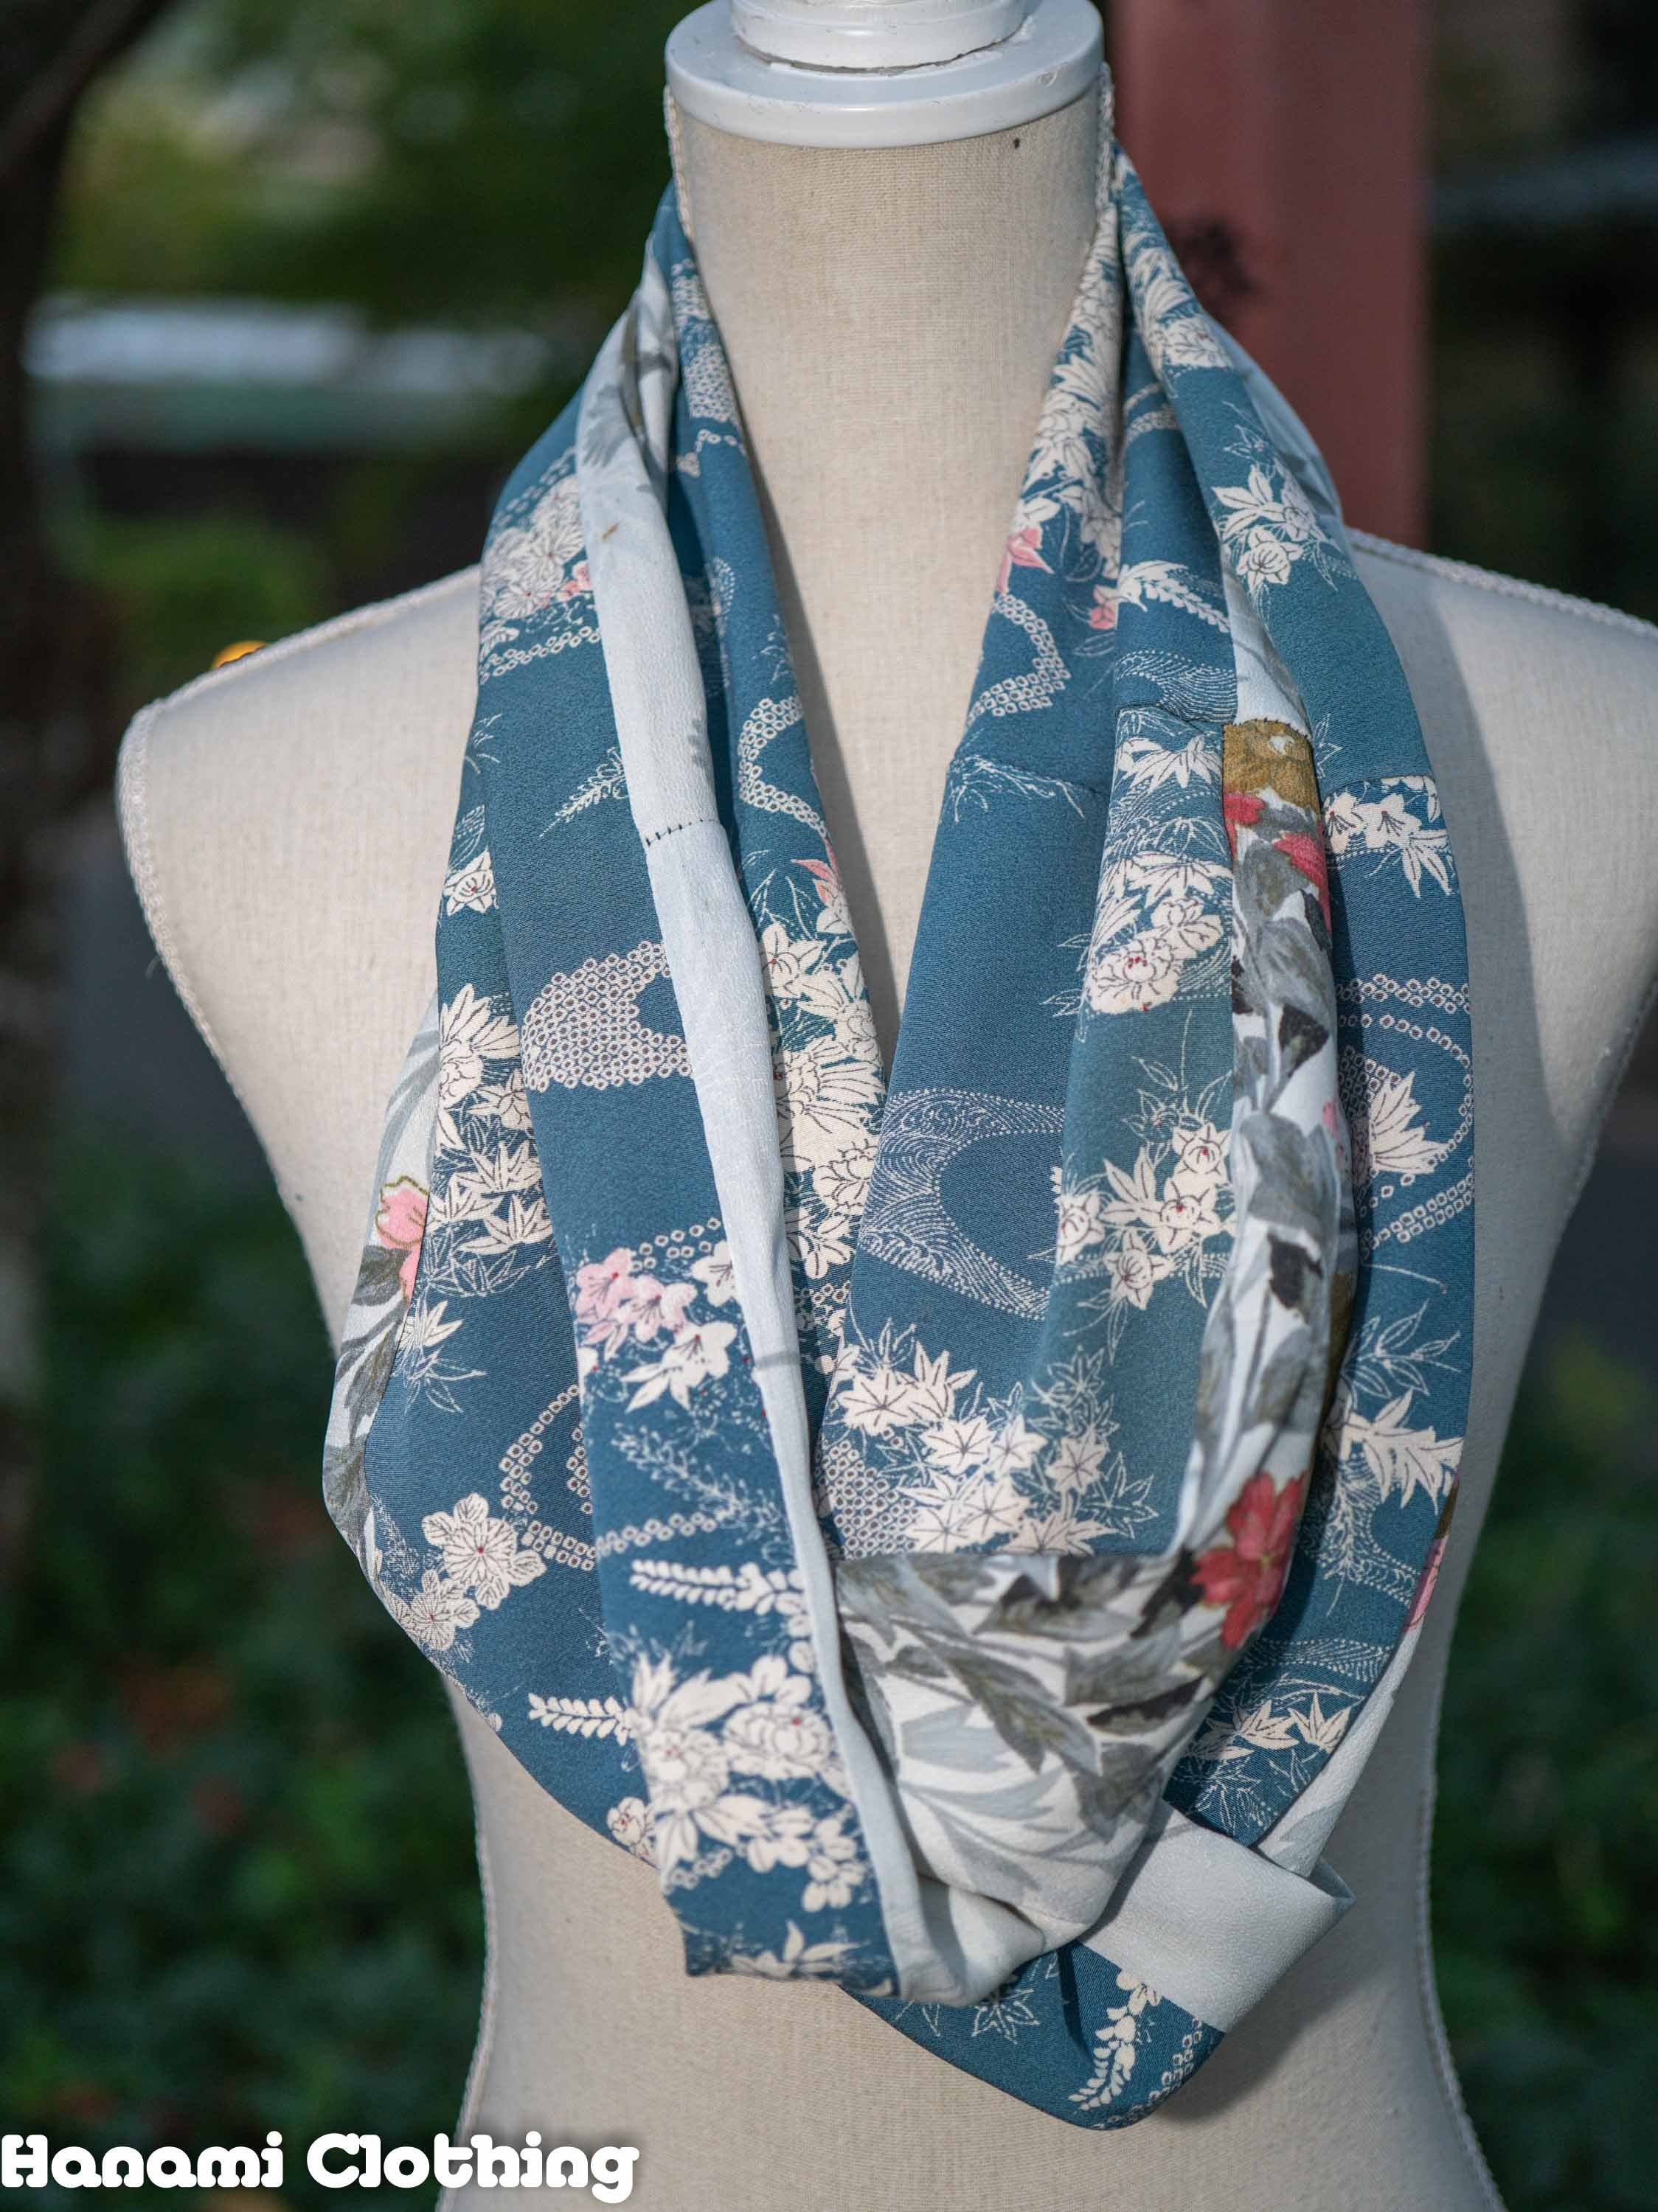 Soft Blue and Silver Sakura Chrysanthemum Recycled Infinity Scarf Vintage Kimonos Traditional Japanese Flowers Patterns Styles